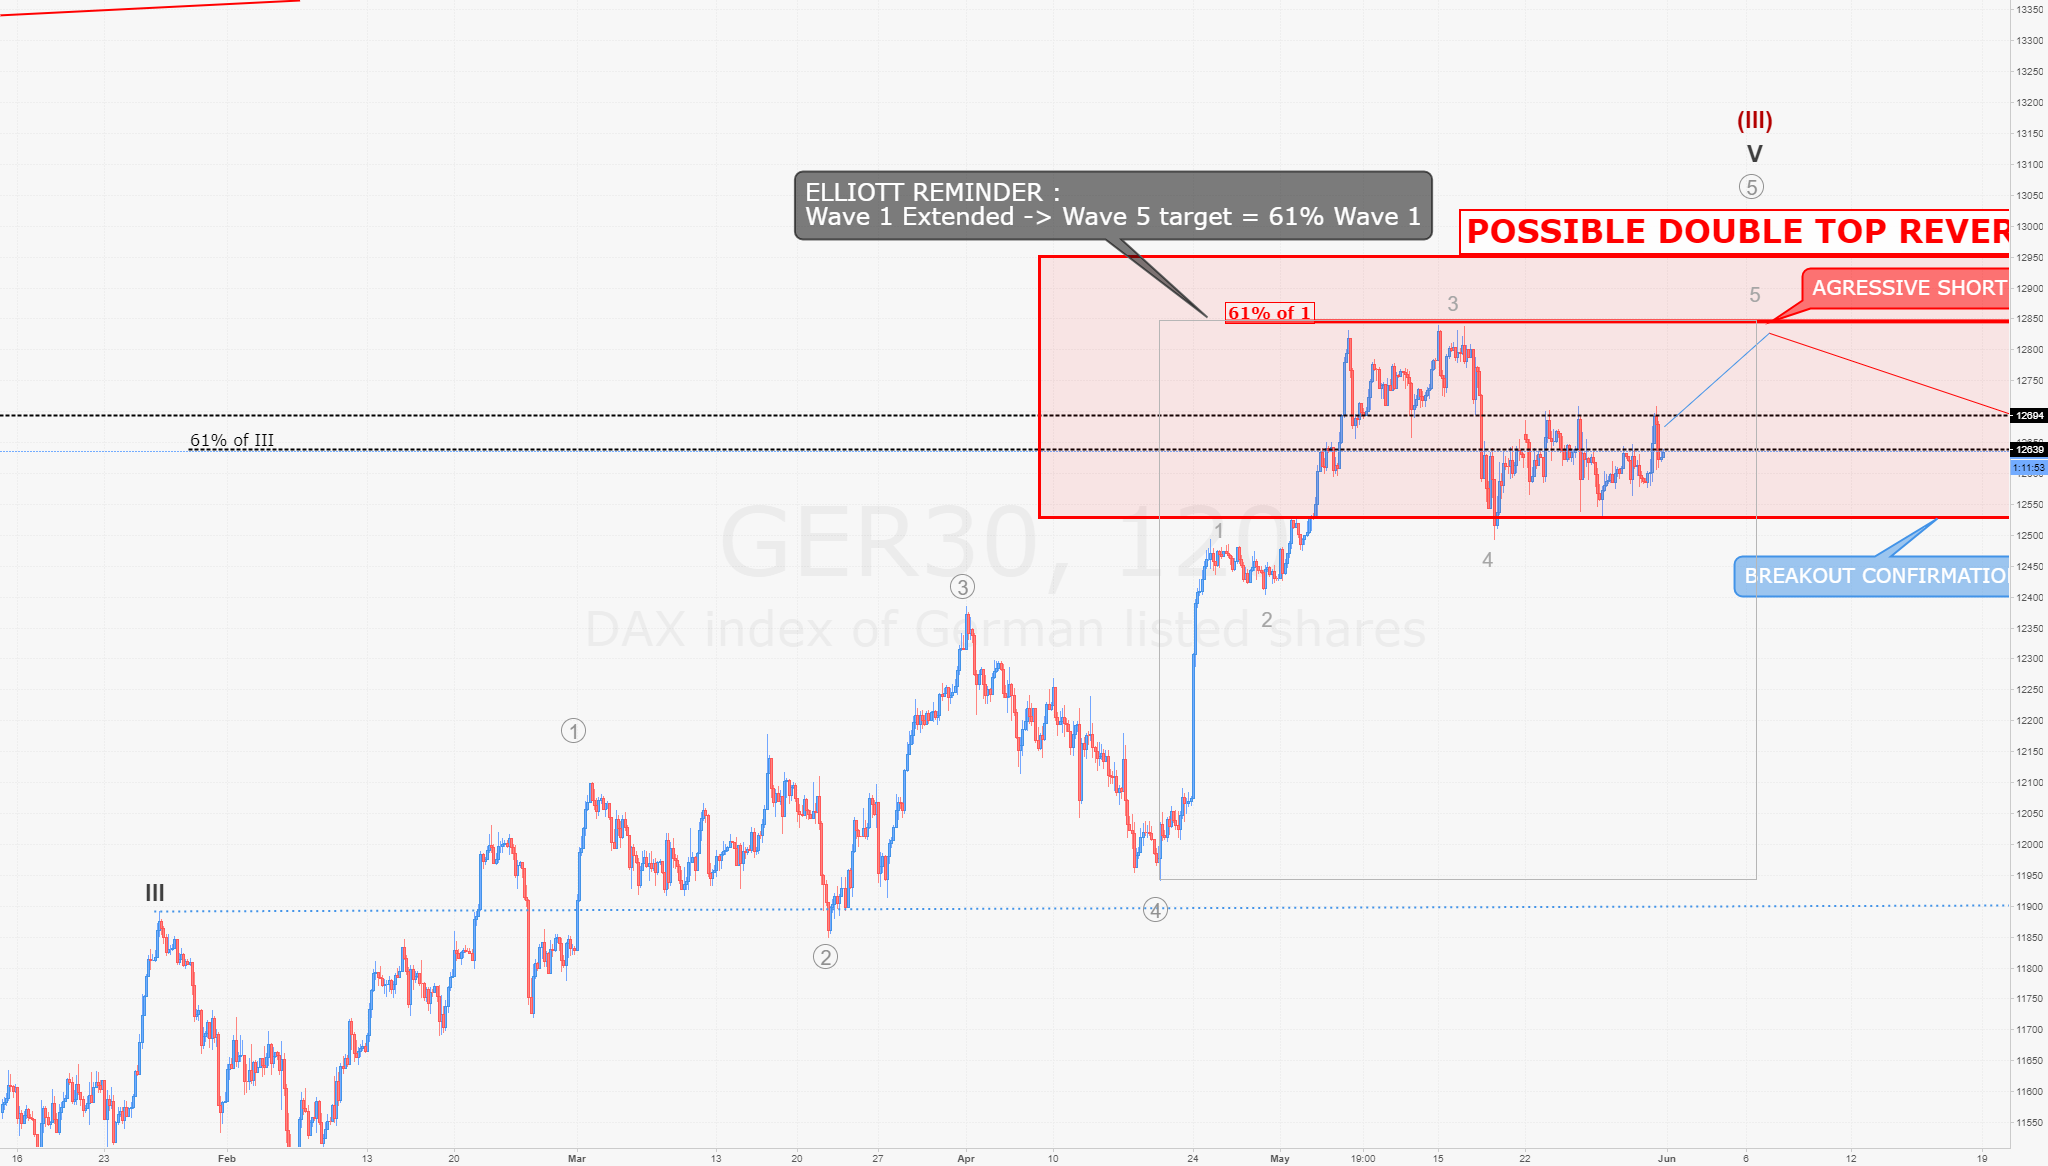 DAX : H2 shows possible double top on 12850 before drop